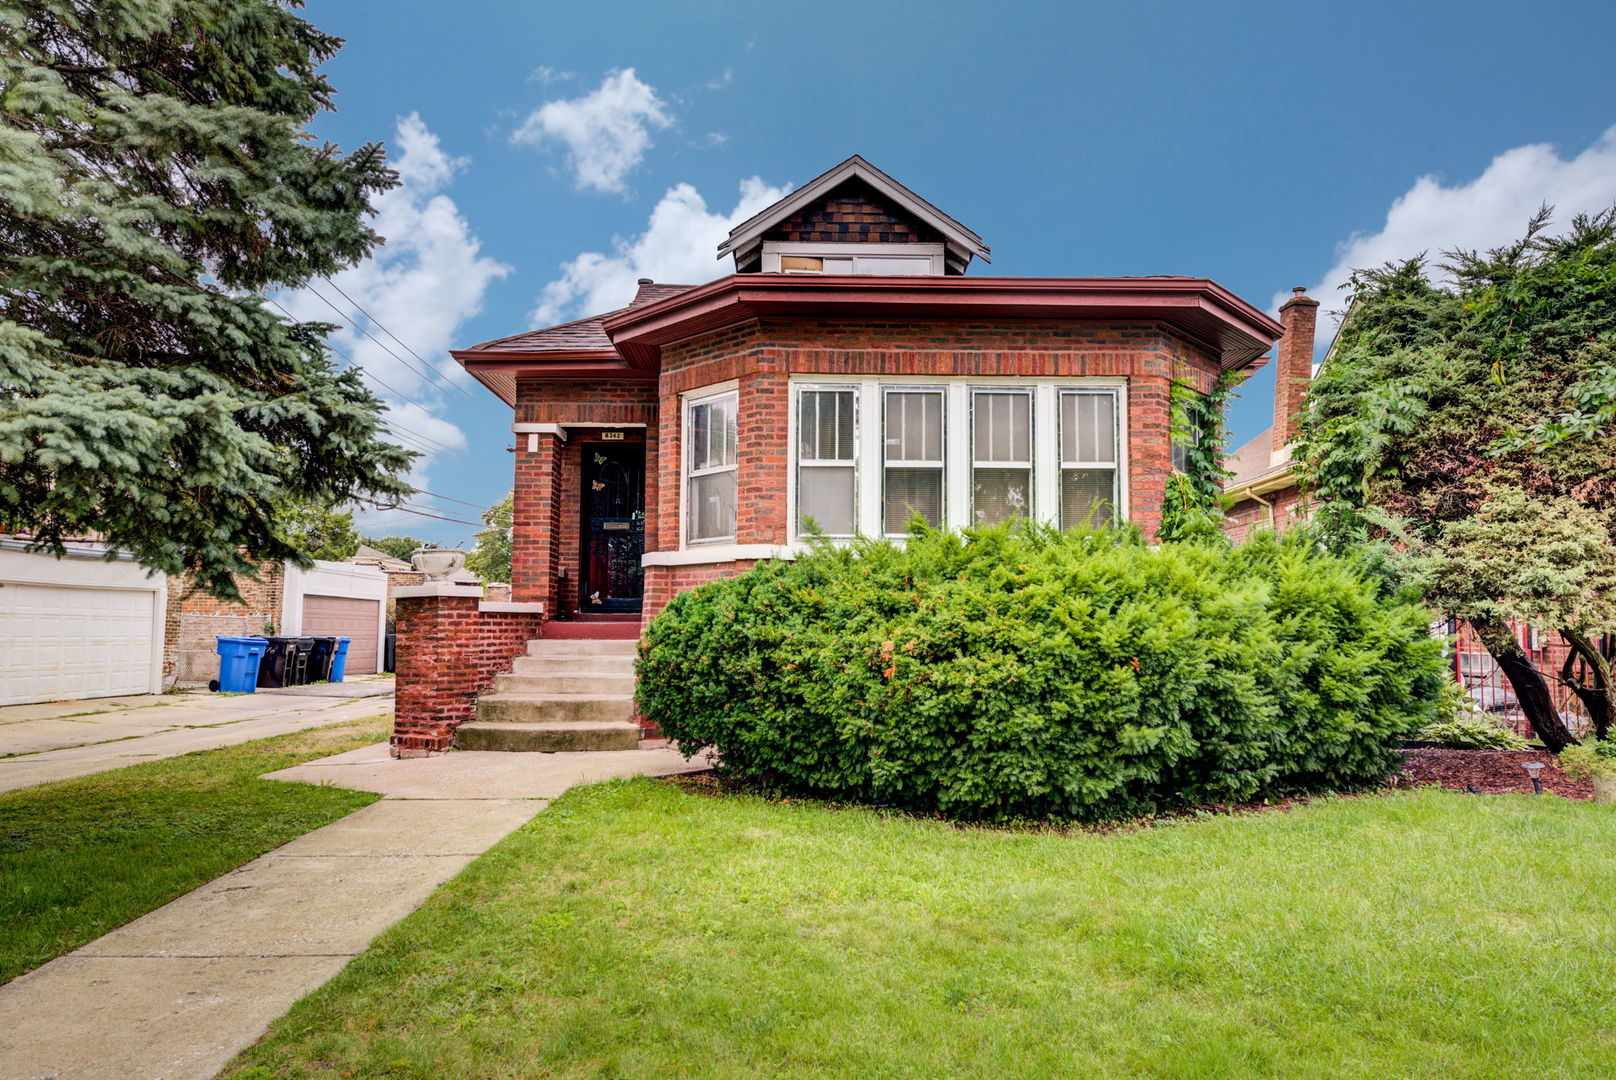 8242 S Honore Street, Chicago IL 60620